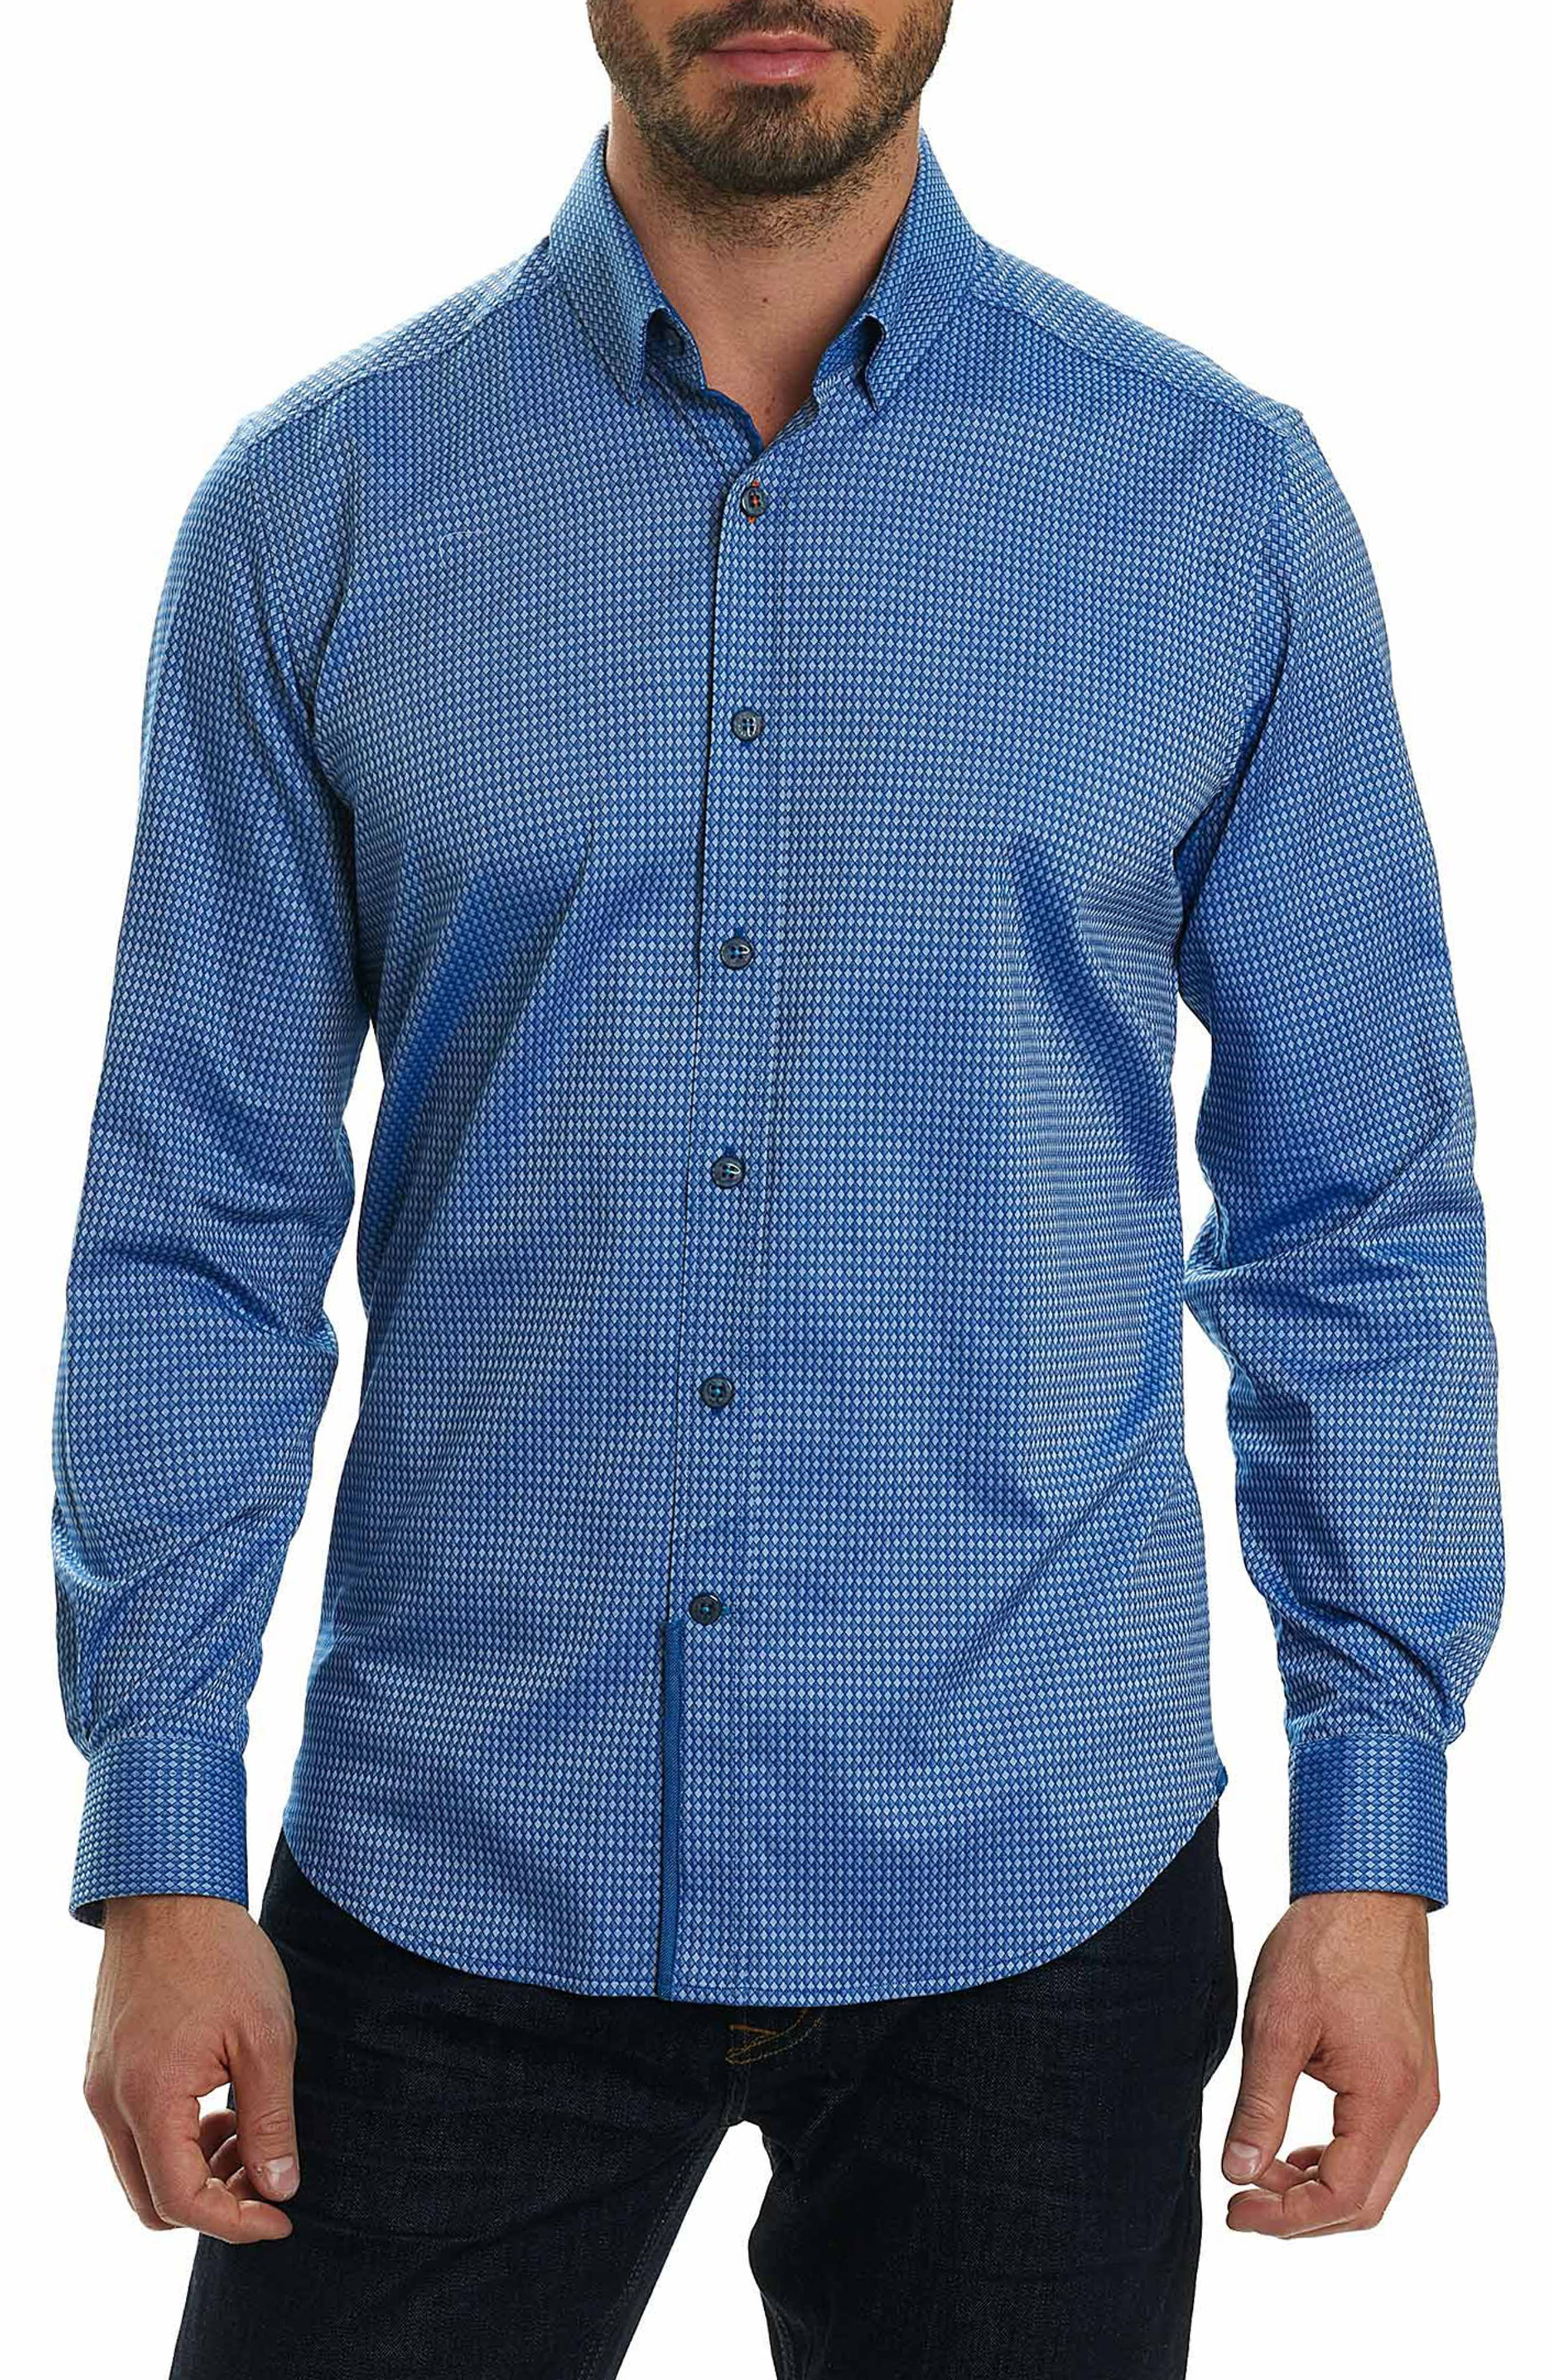 Matthew Tailored Fit Print Sport Shirt,                         Main,                         color,